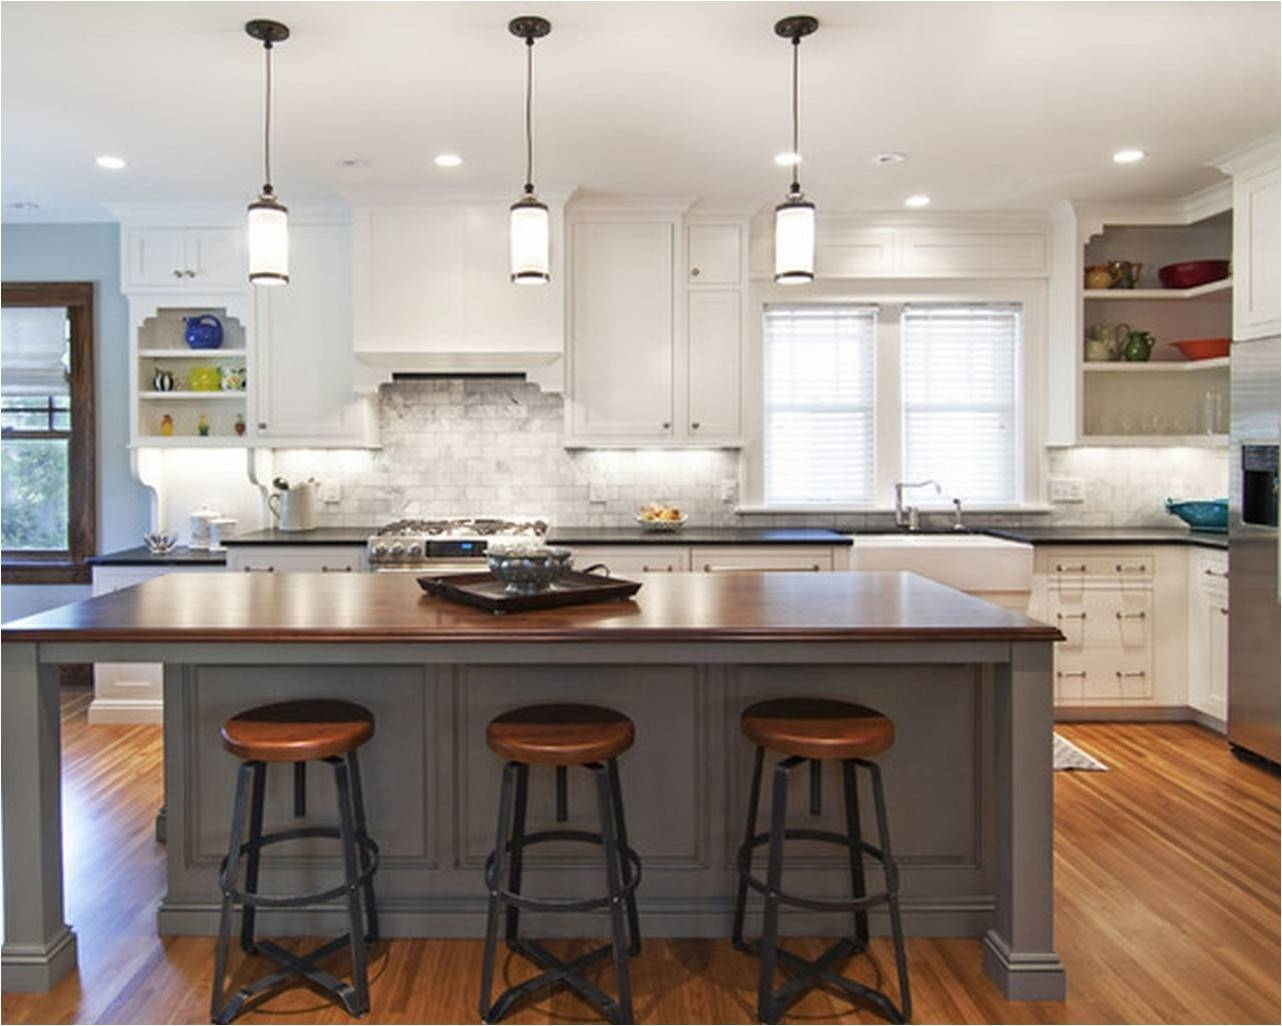 Glass Pendant Lights For Kitchen Island Rustic Kitchen Island In with Island Pendant Lights (Image 6 of 15)